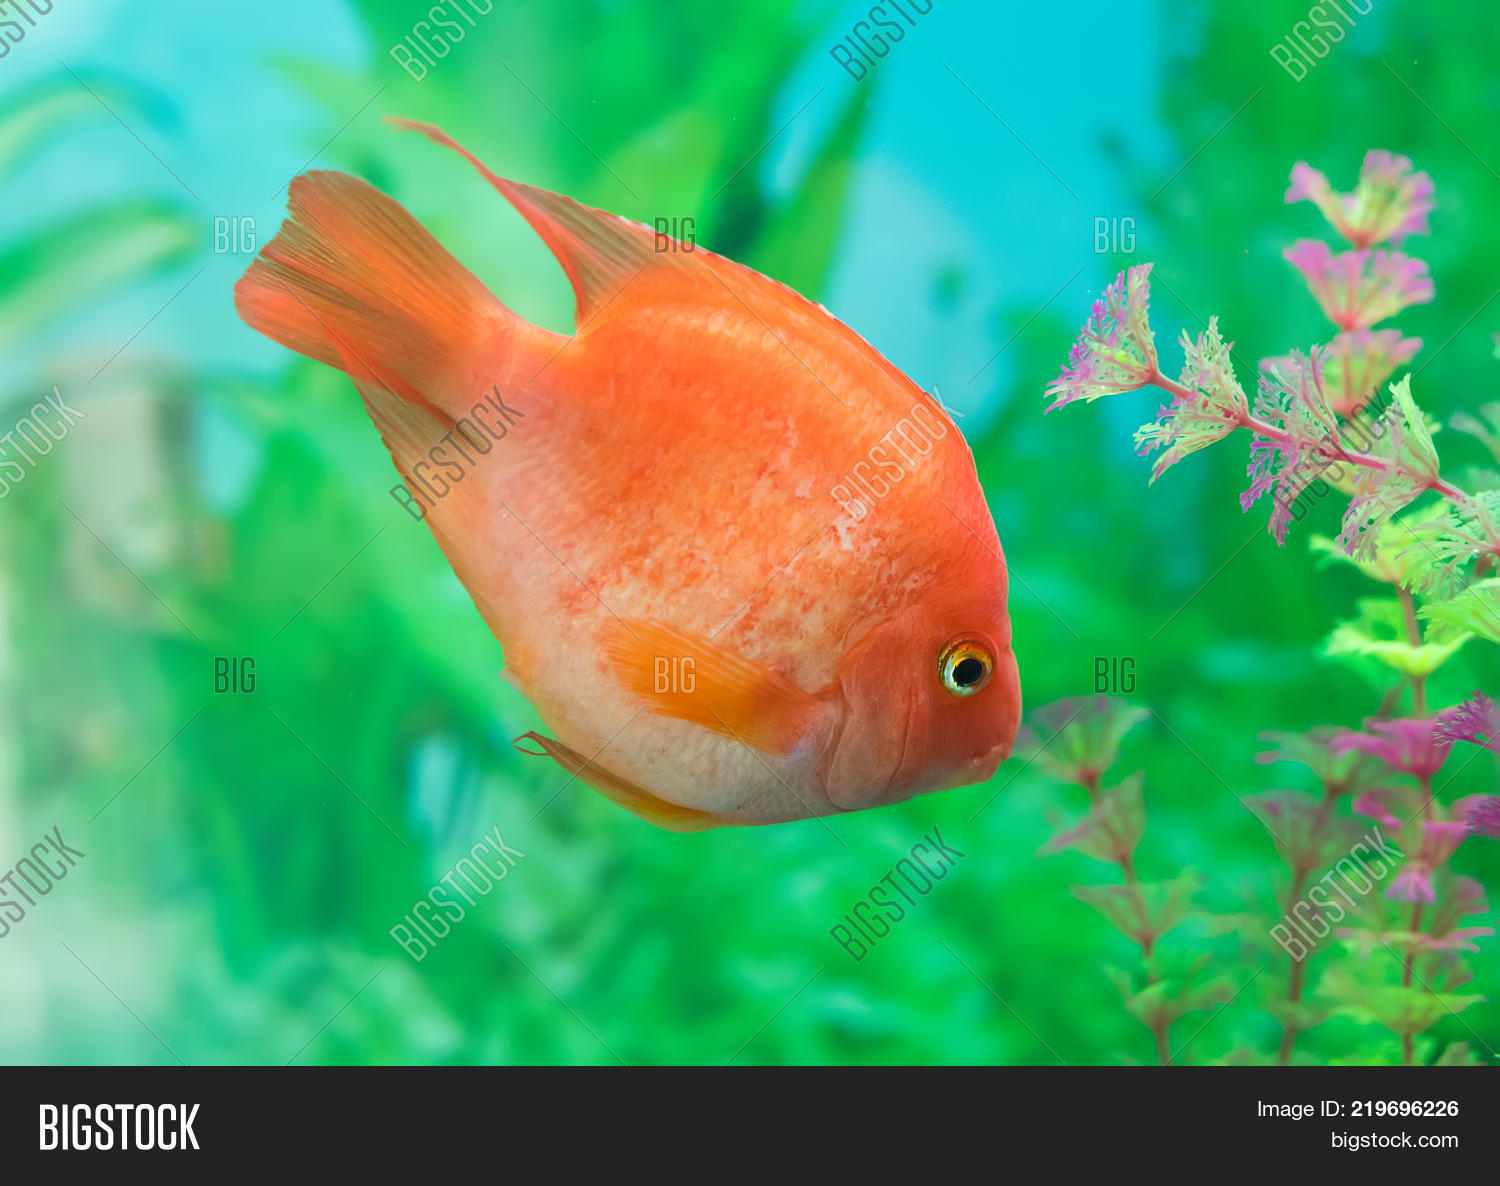 red parrot cichlid image photo free trial bigstock